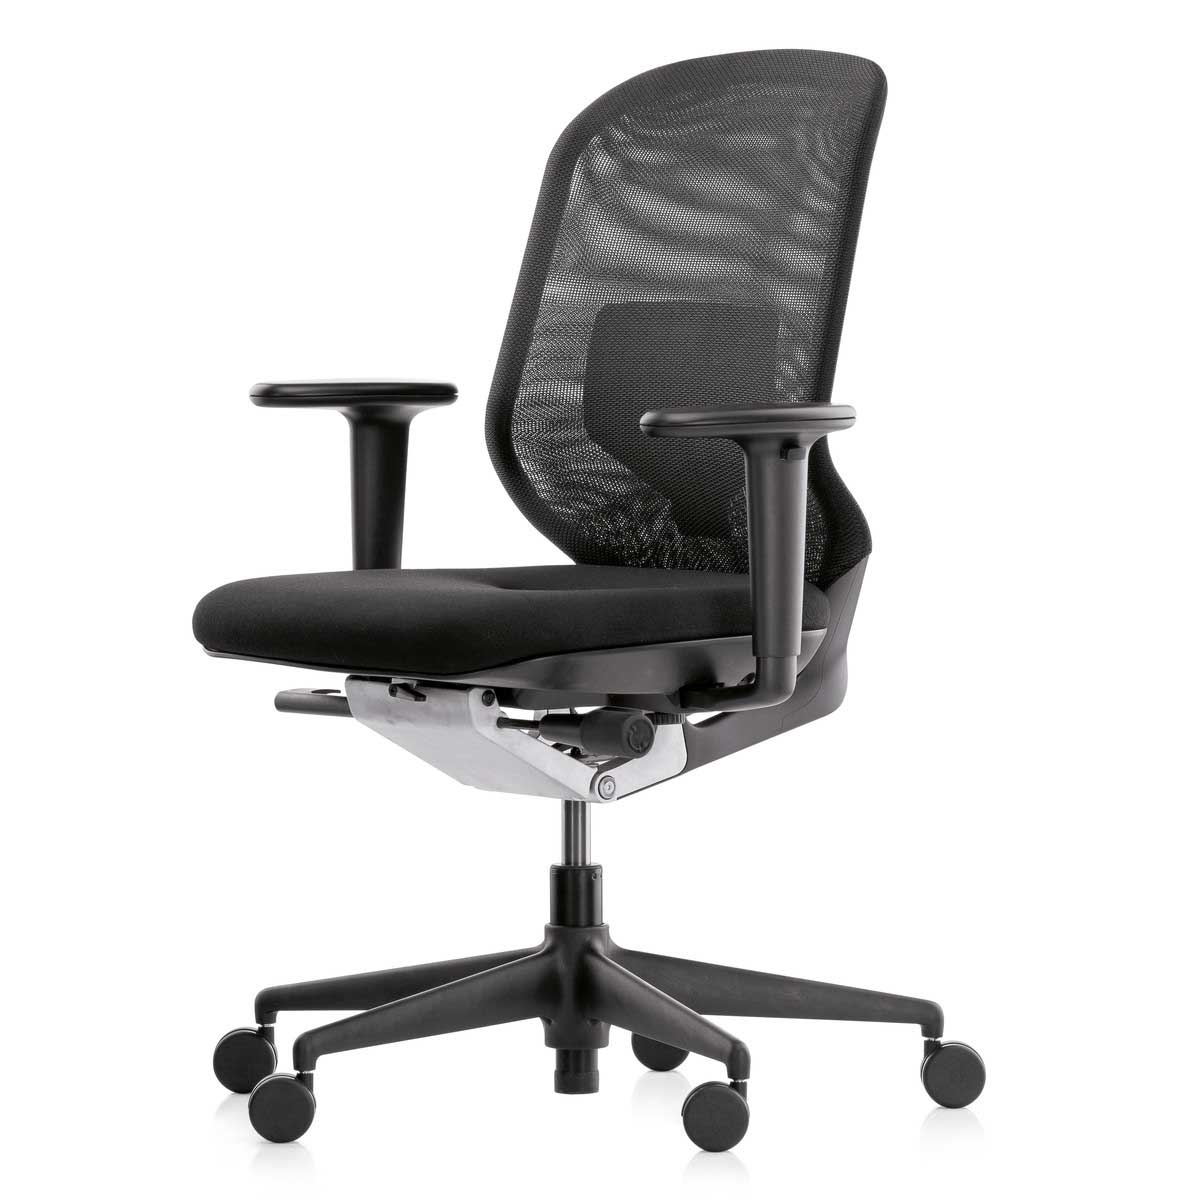 MedaPal Black Office Rotating Chair from Vitra